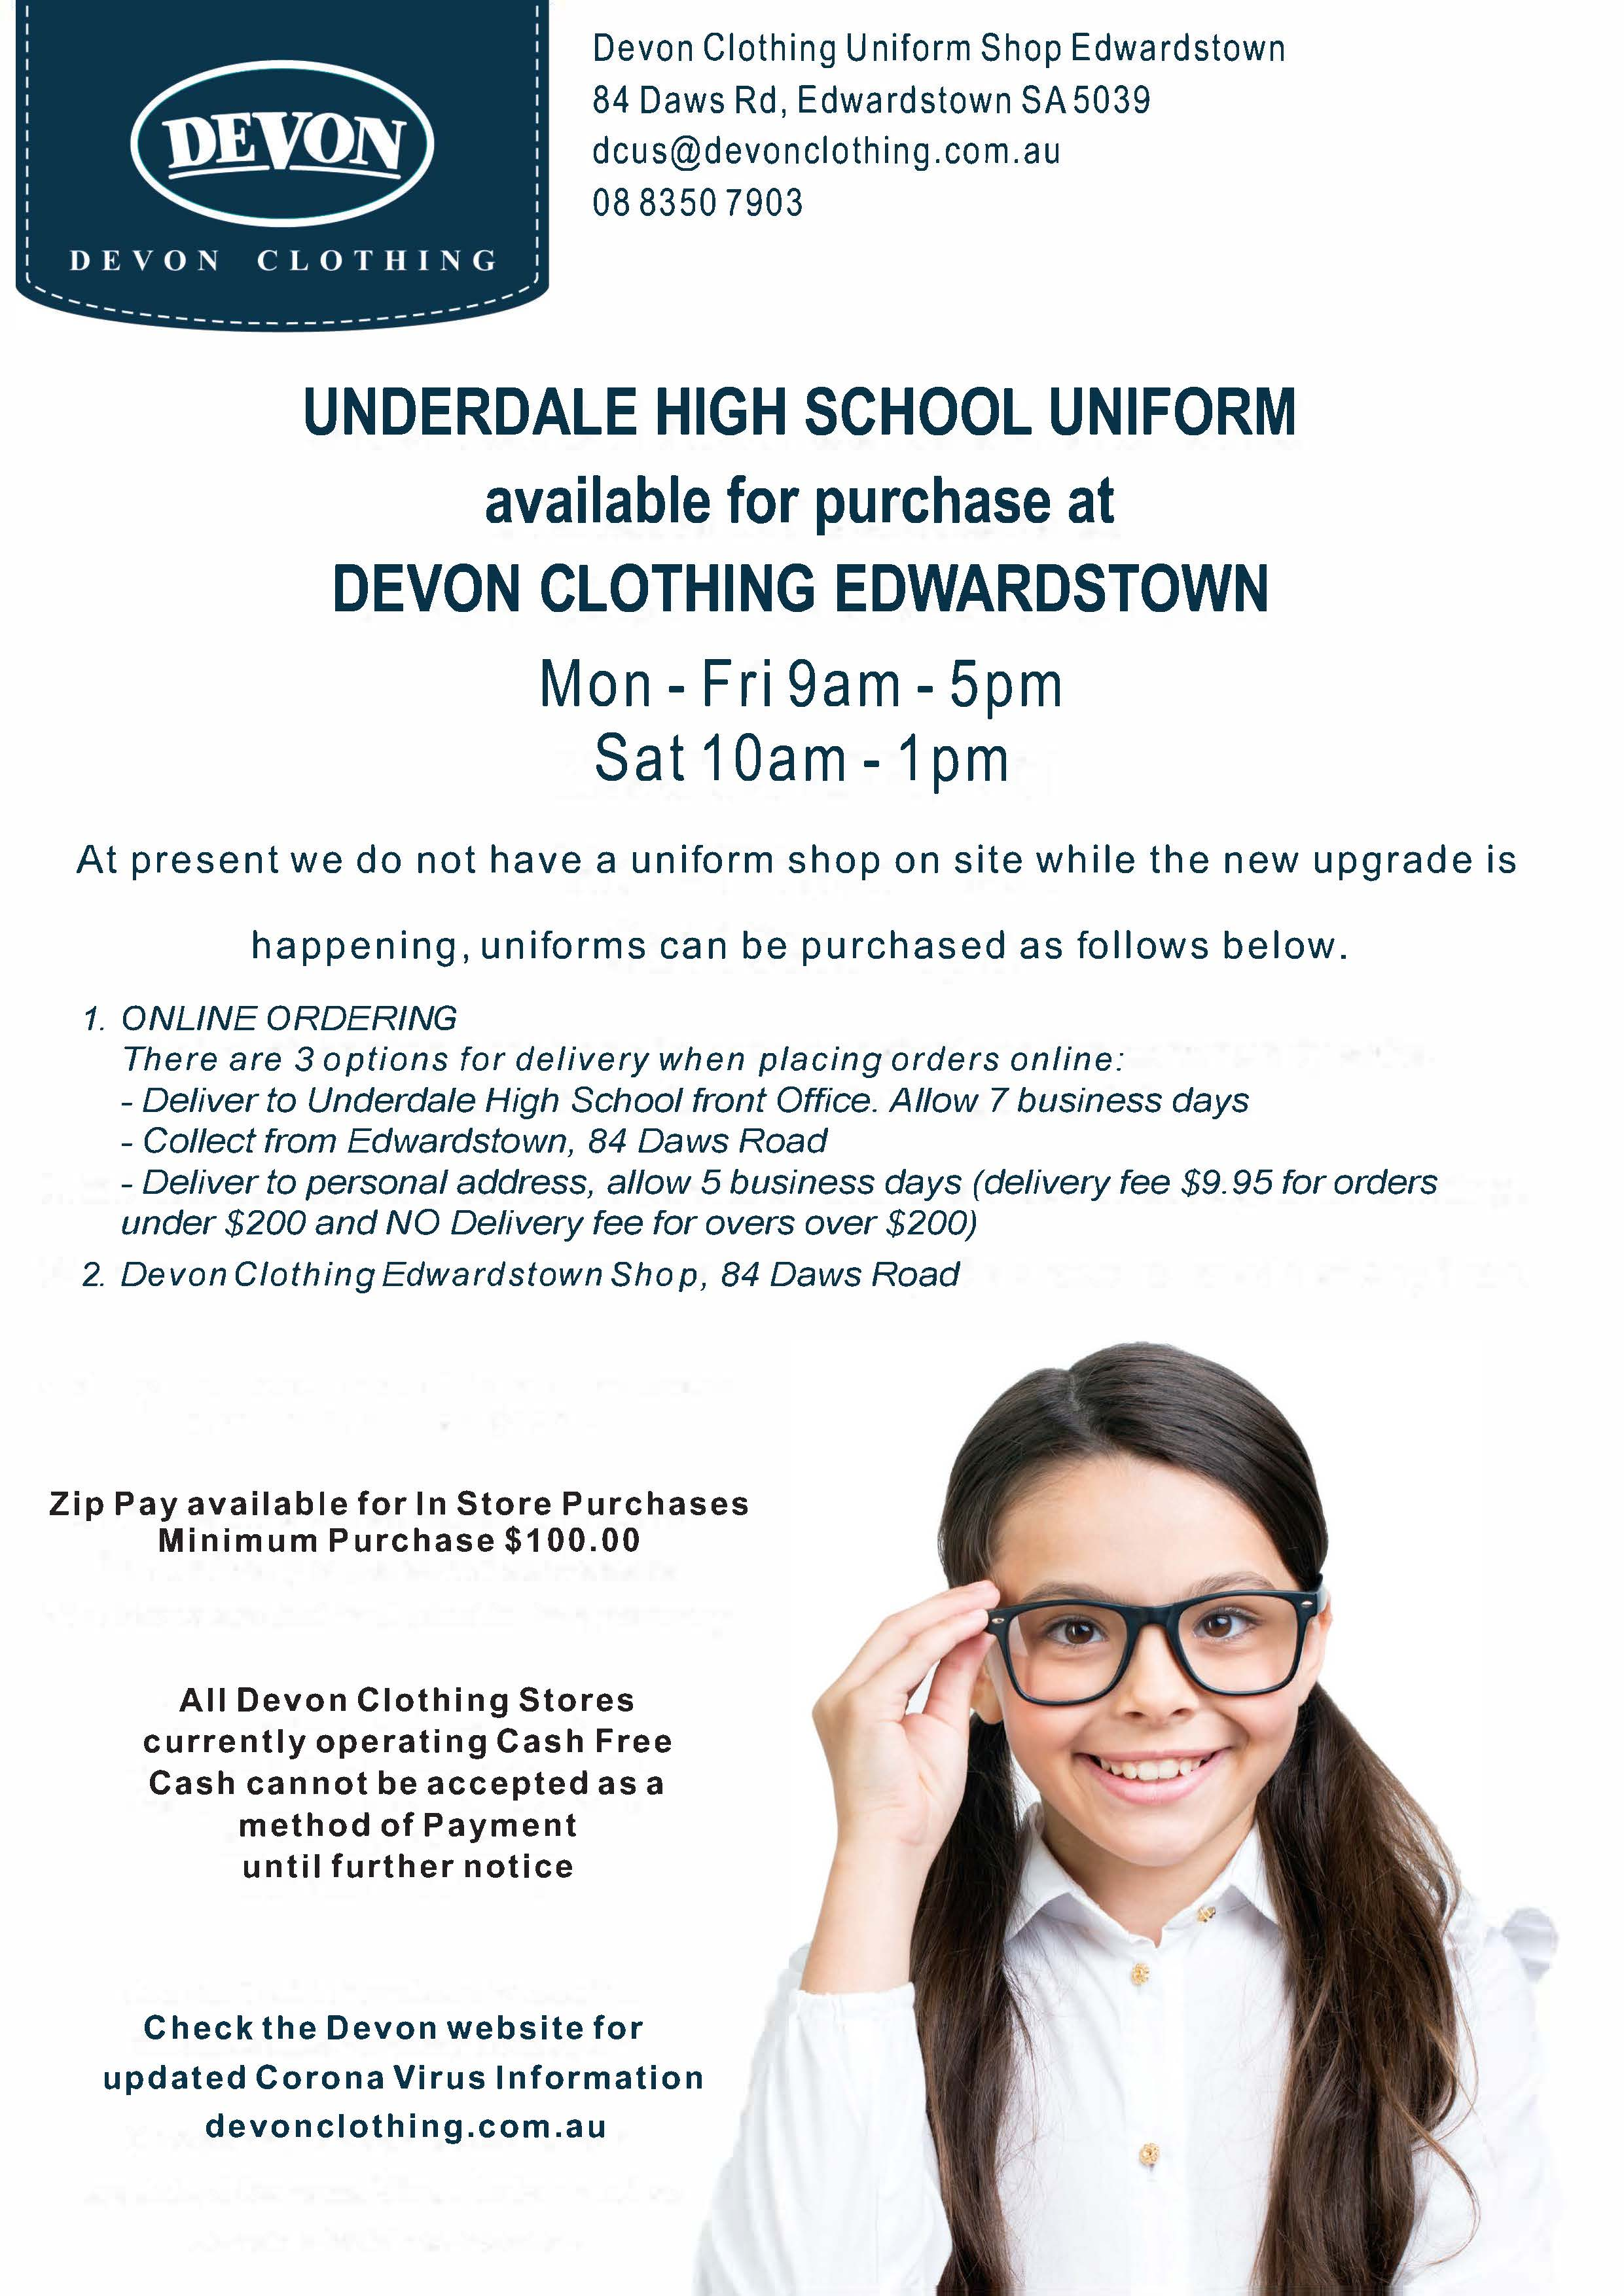 devon uniform alternative shop